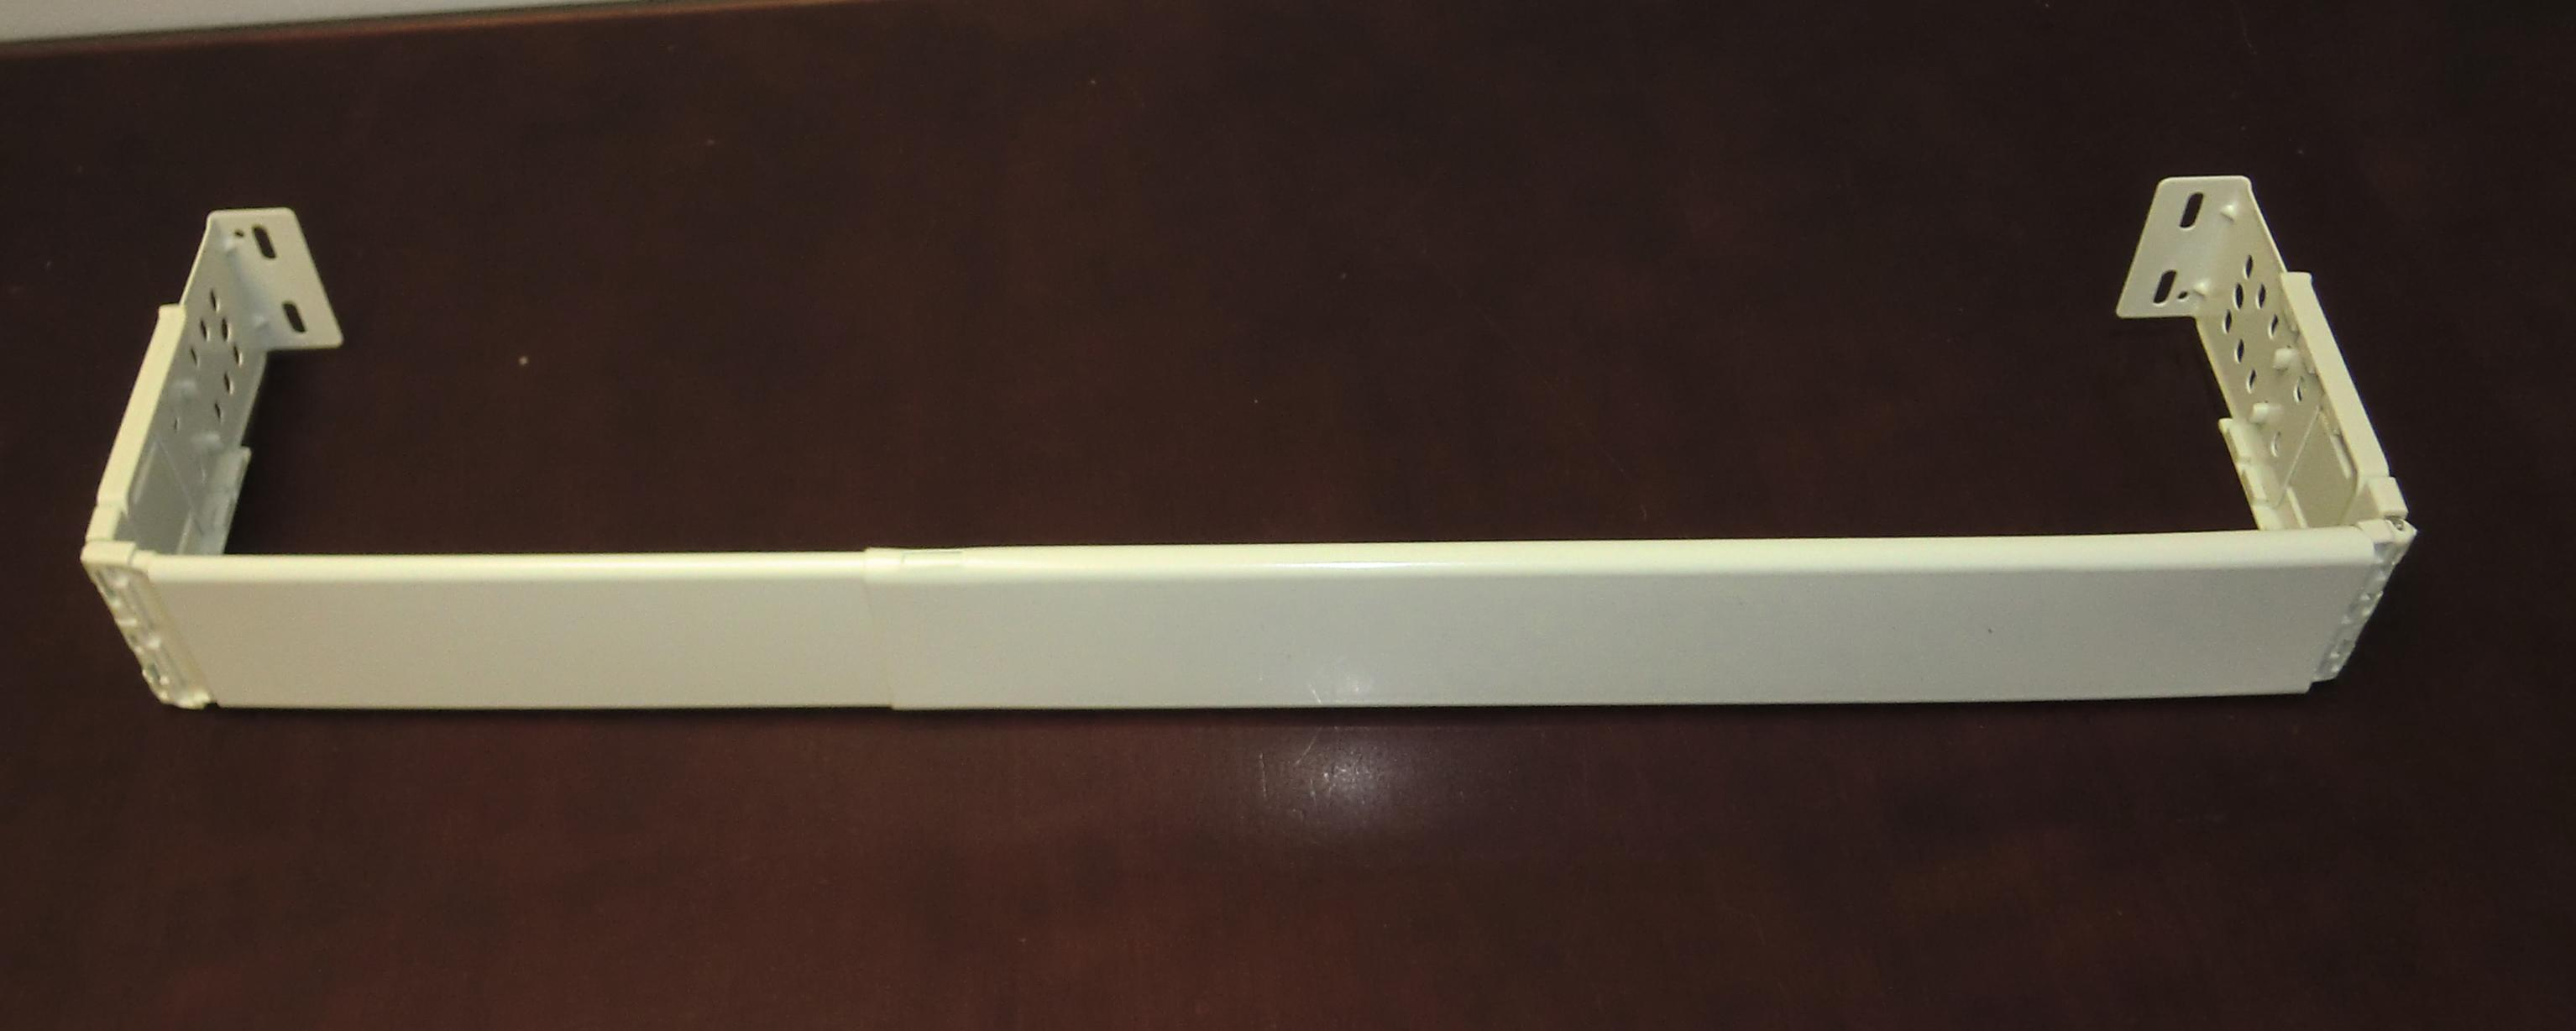 Graber dauphine rod flat valance rod 48 to 84 inches off white